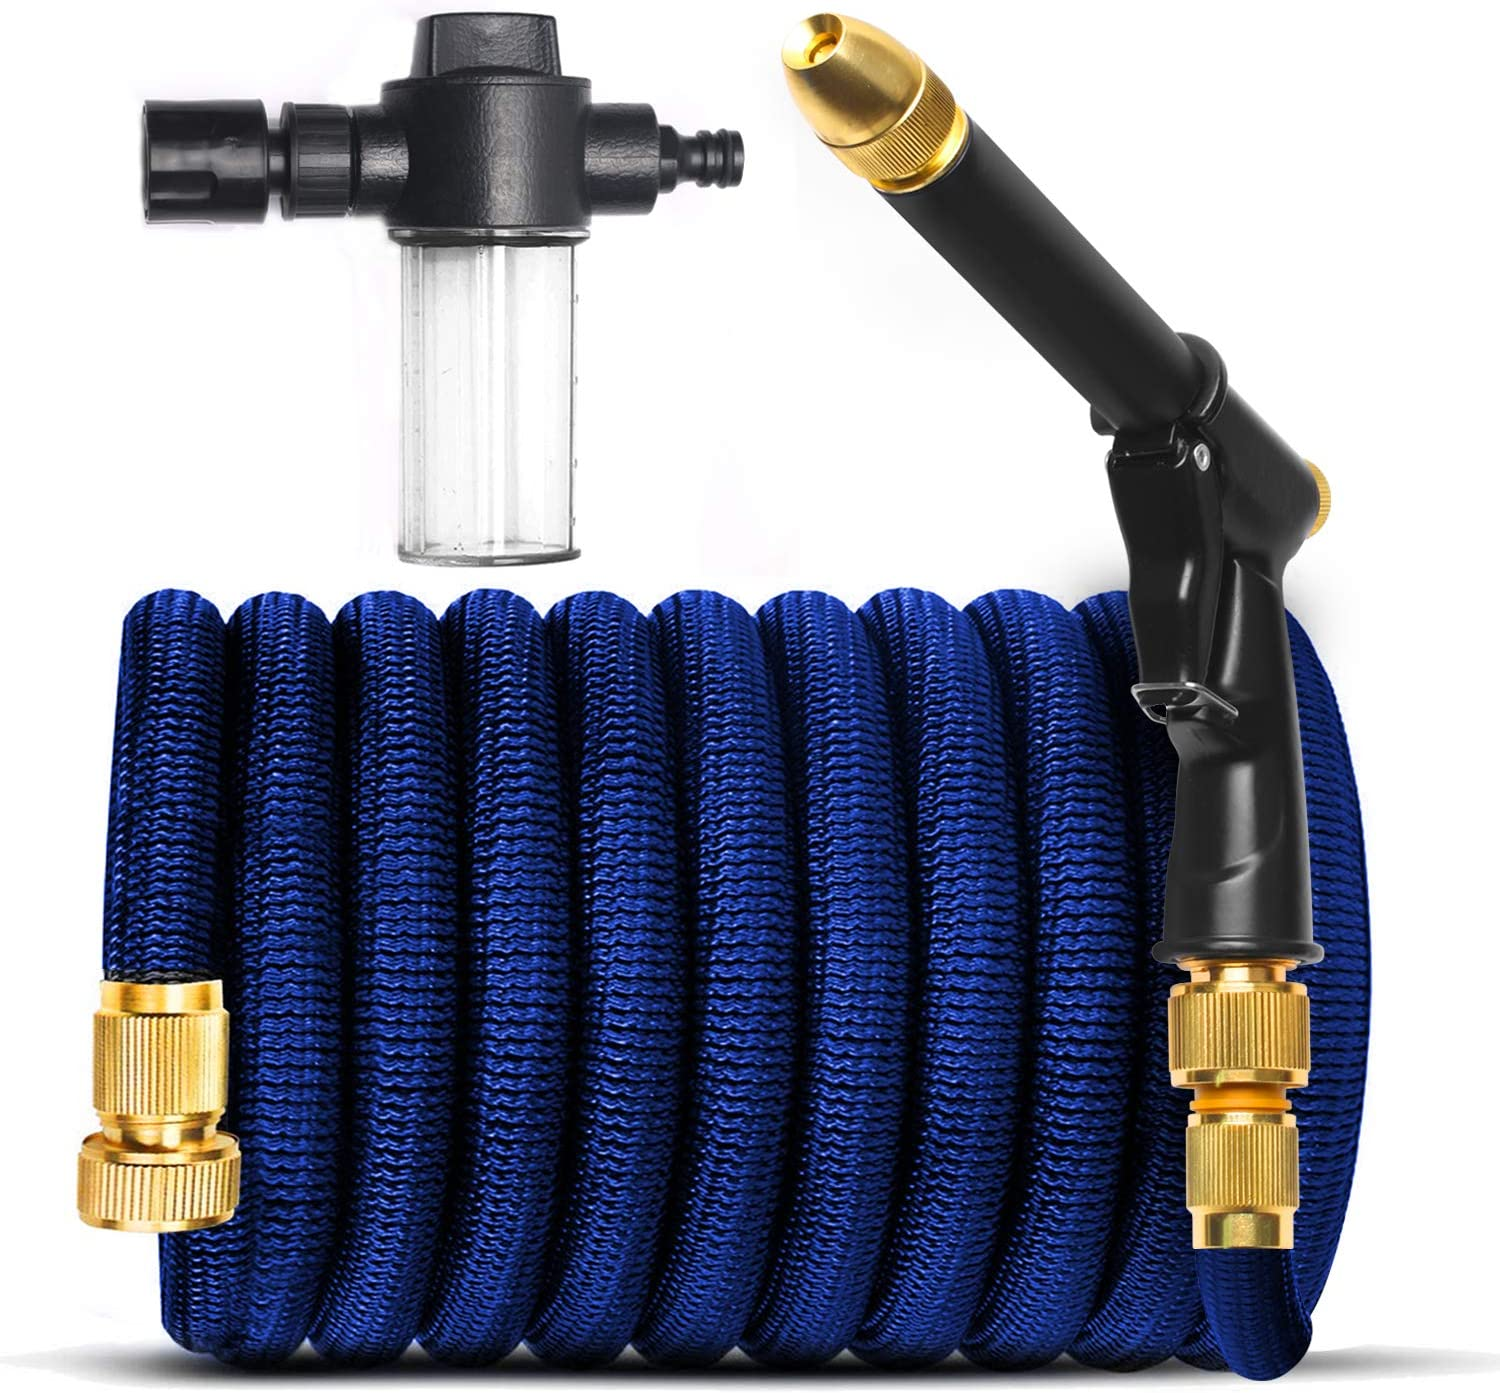 "Garden Hose Set,Extend and Increase Water Pressure After Water Injection, 3/4"" Solid Brass Quick Fittings,180 Degree Adjustable Nozzle, with Cleaning Fluid Filling Tank."